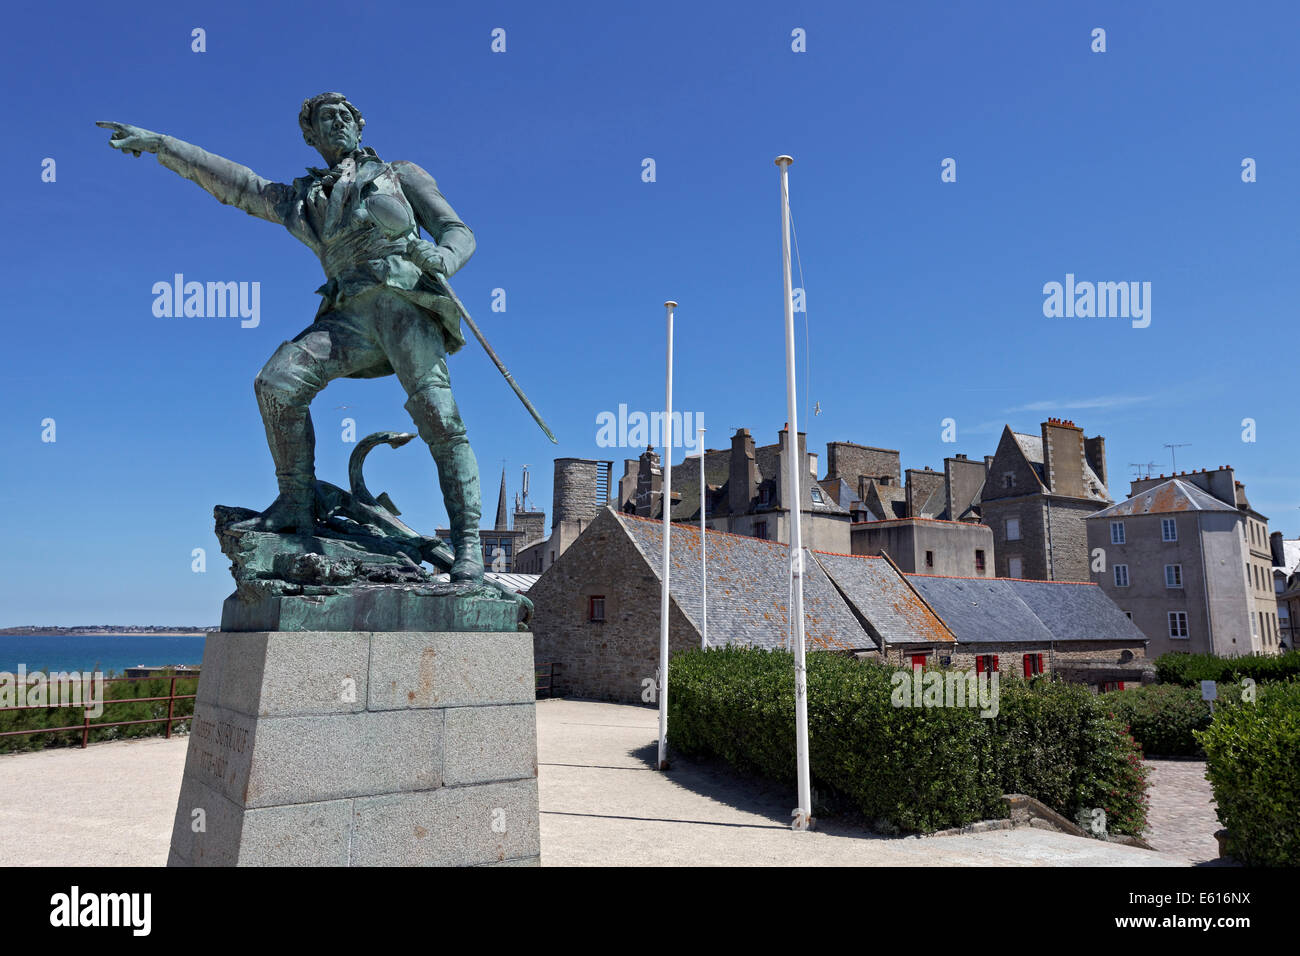 Statue of the privateer captain Robert Surcouf on the city's fortifications, Intra Muros, Saint-Malo, Ille-et - Stock Image